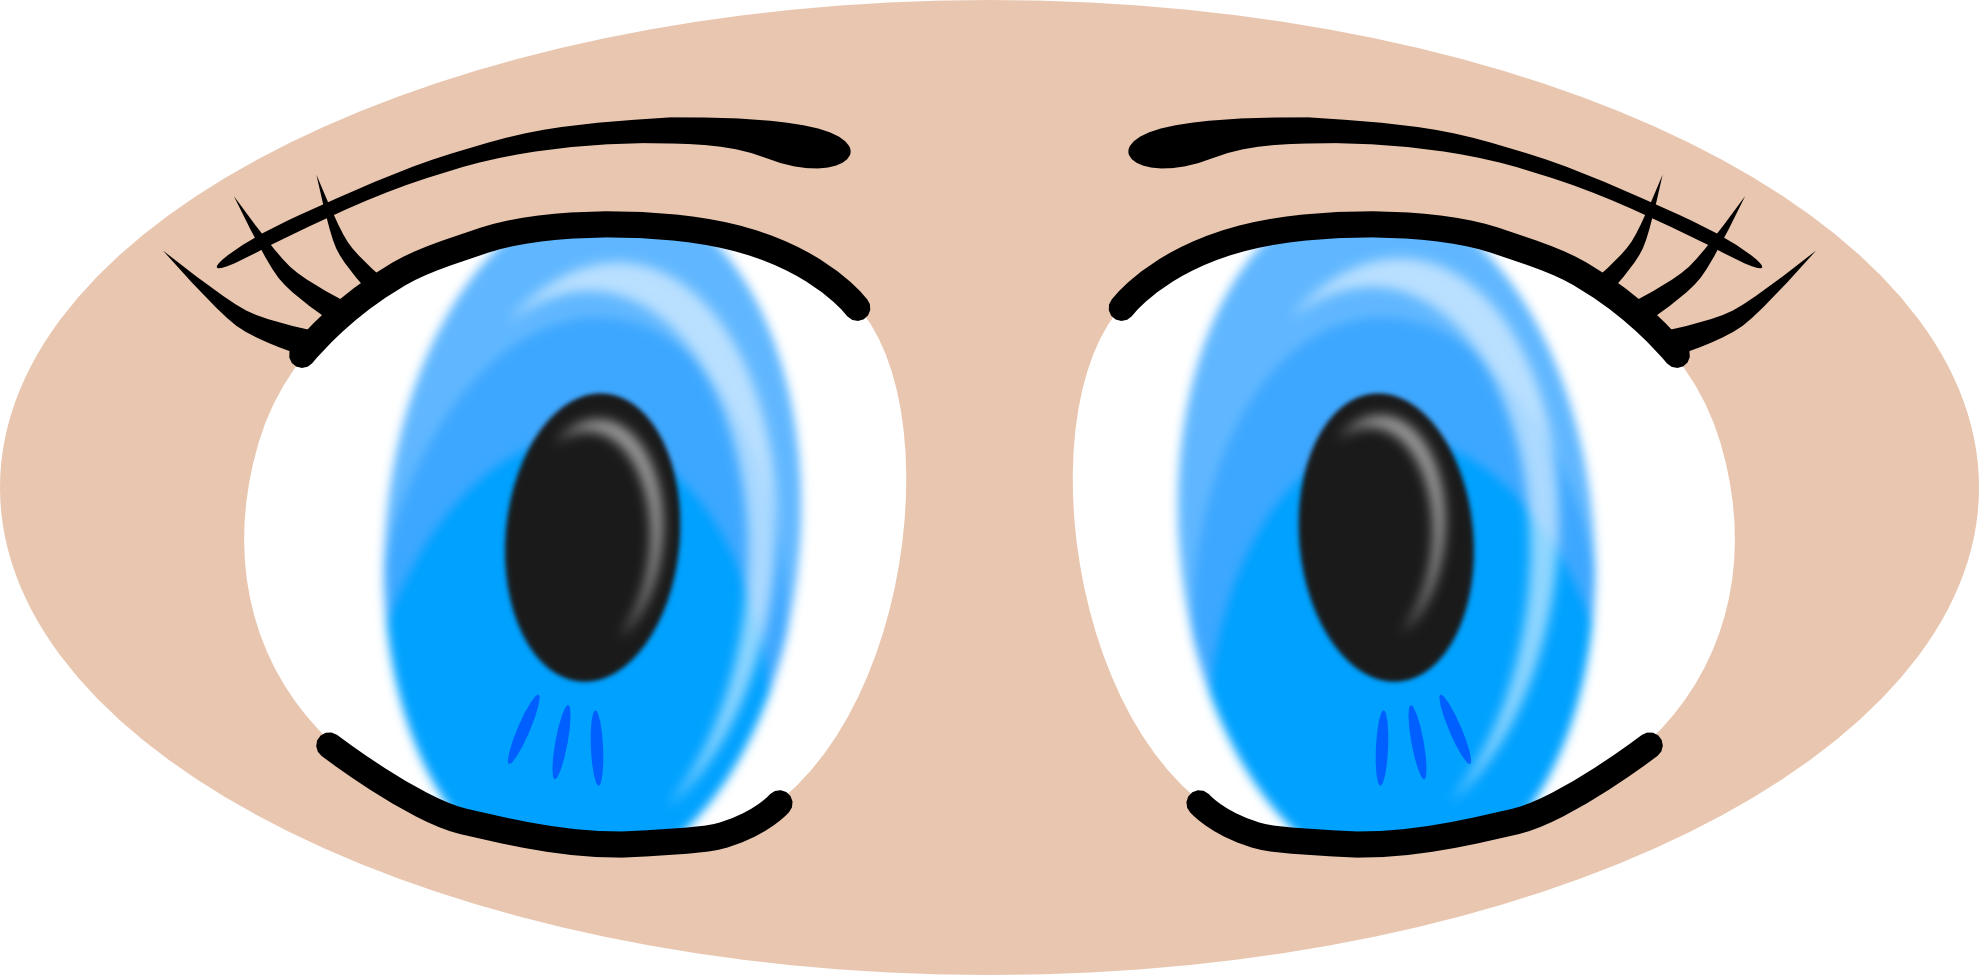 Eyeball eye clip art clipart cliparts for you image